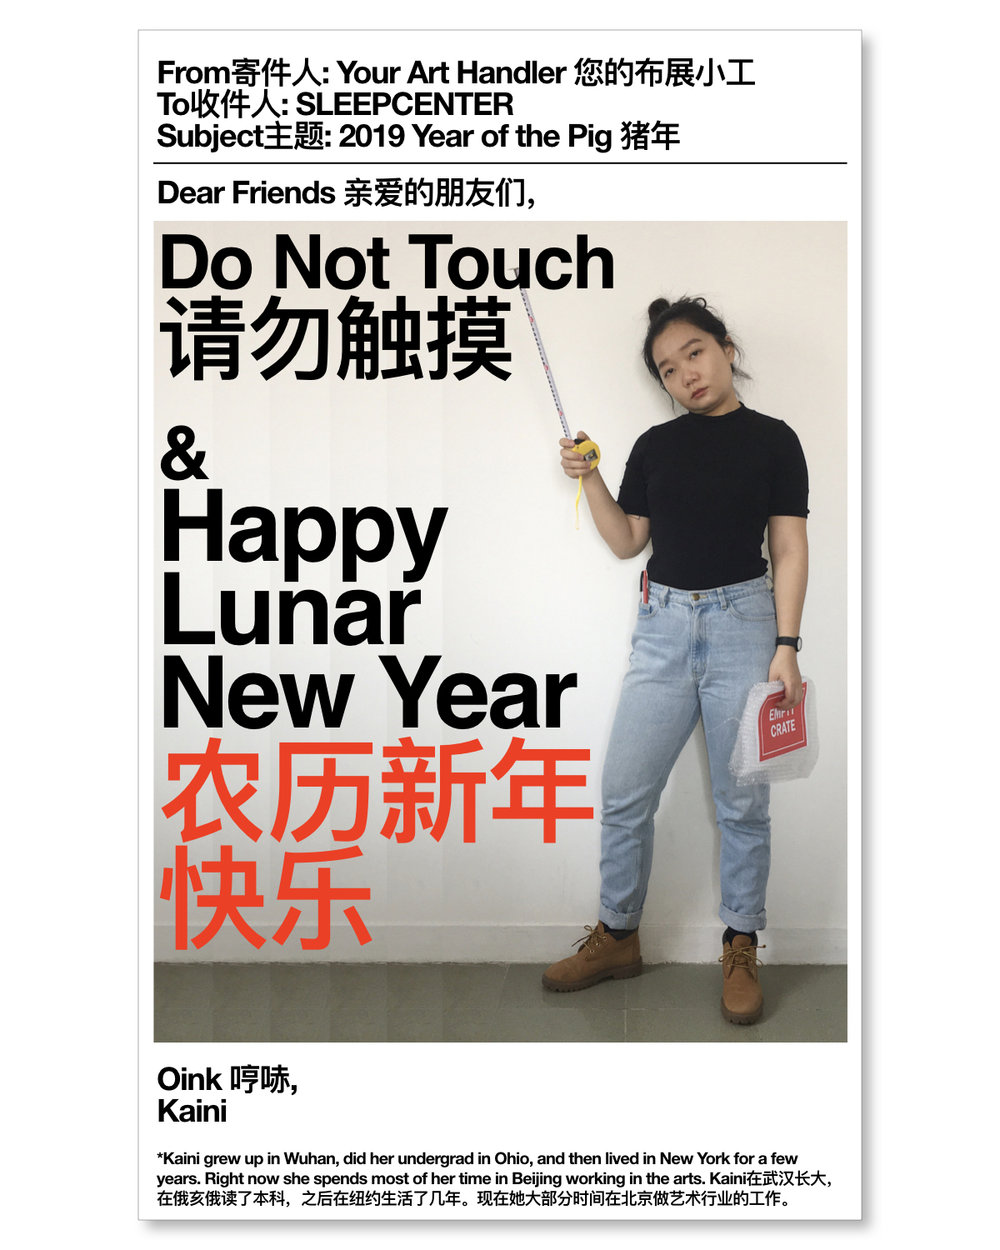 Day 3 of Lunar New Year, the Year of Pig with Kaini Zhou | 己亥肖猪年 「初三」